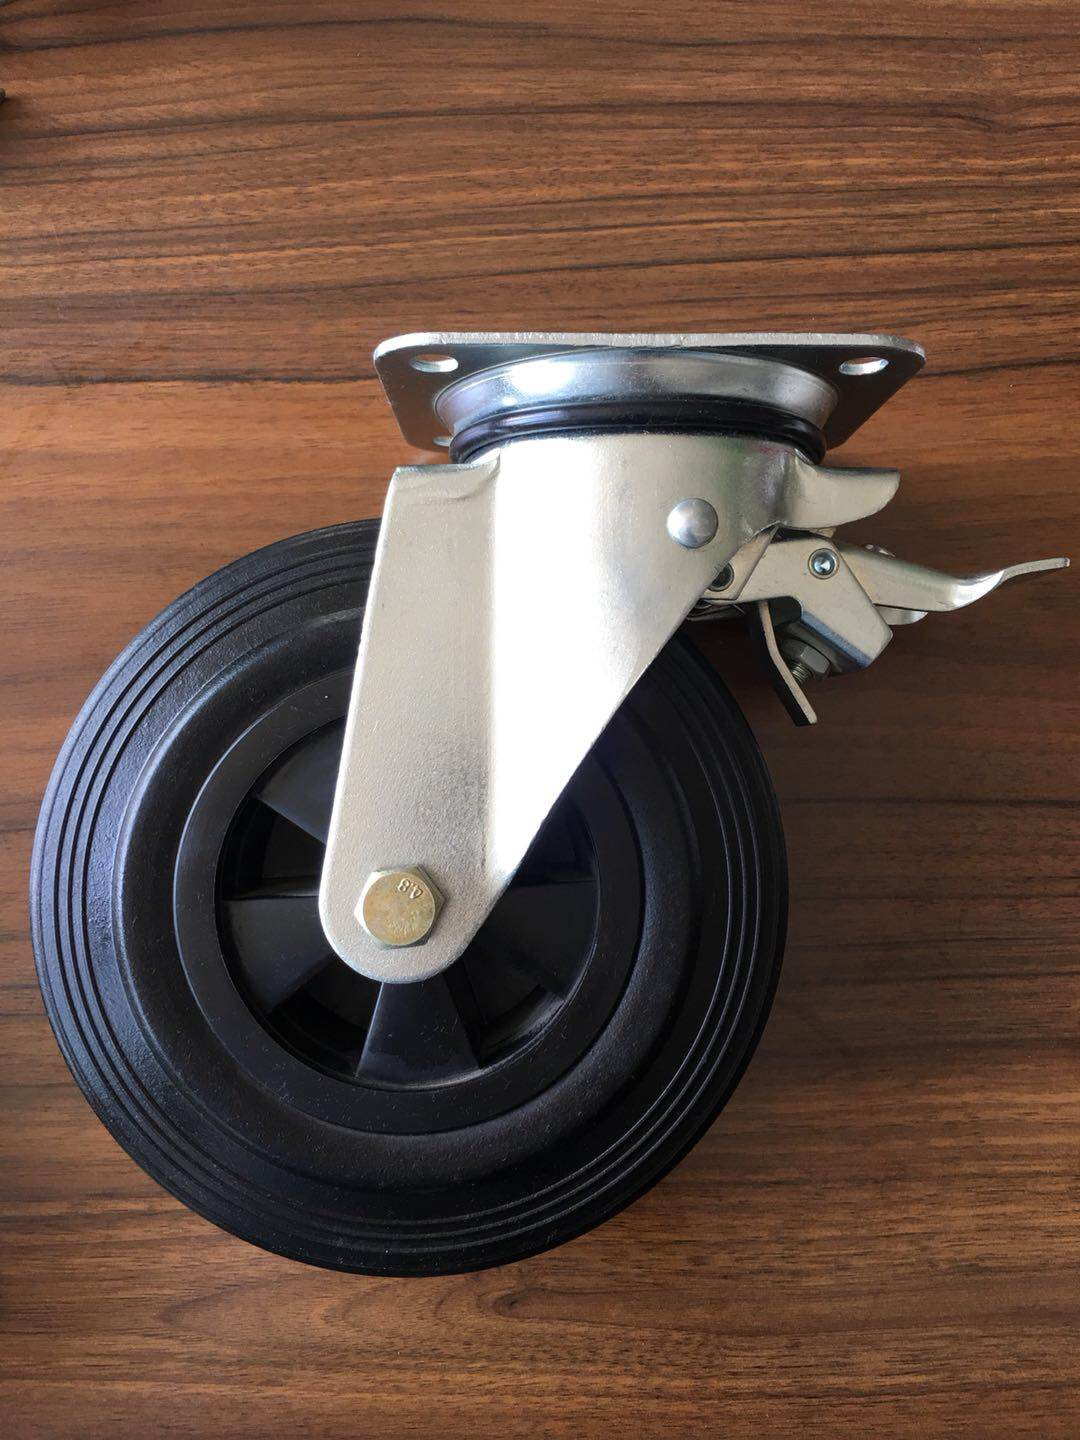 rubber caster wheels for waste bins